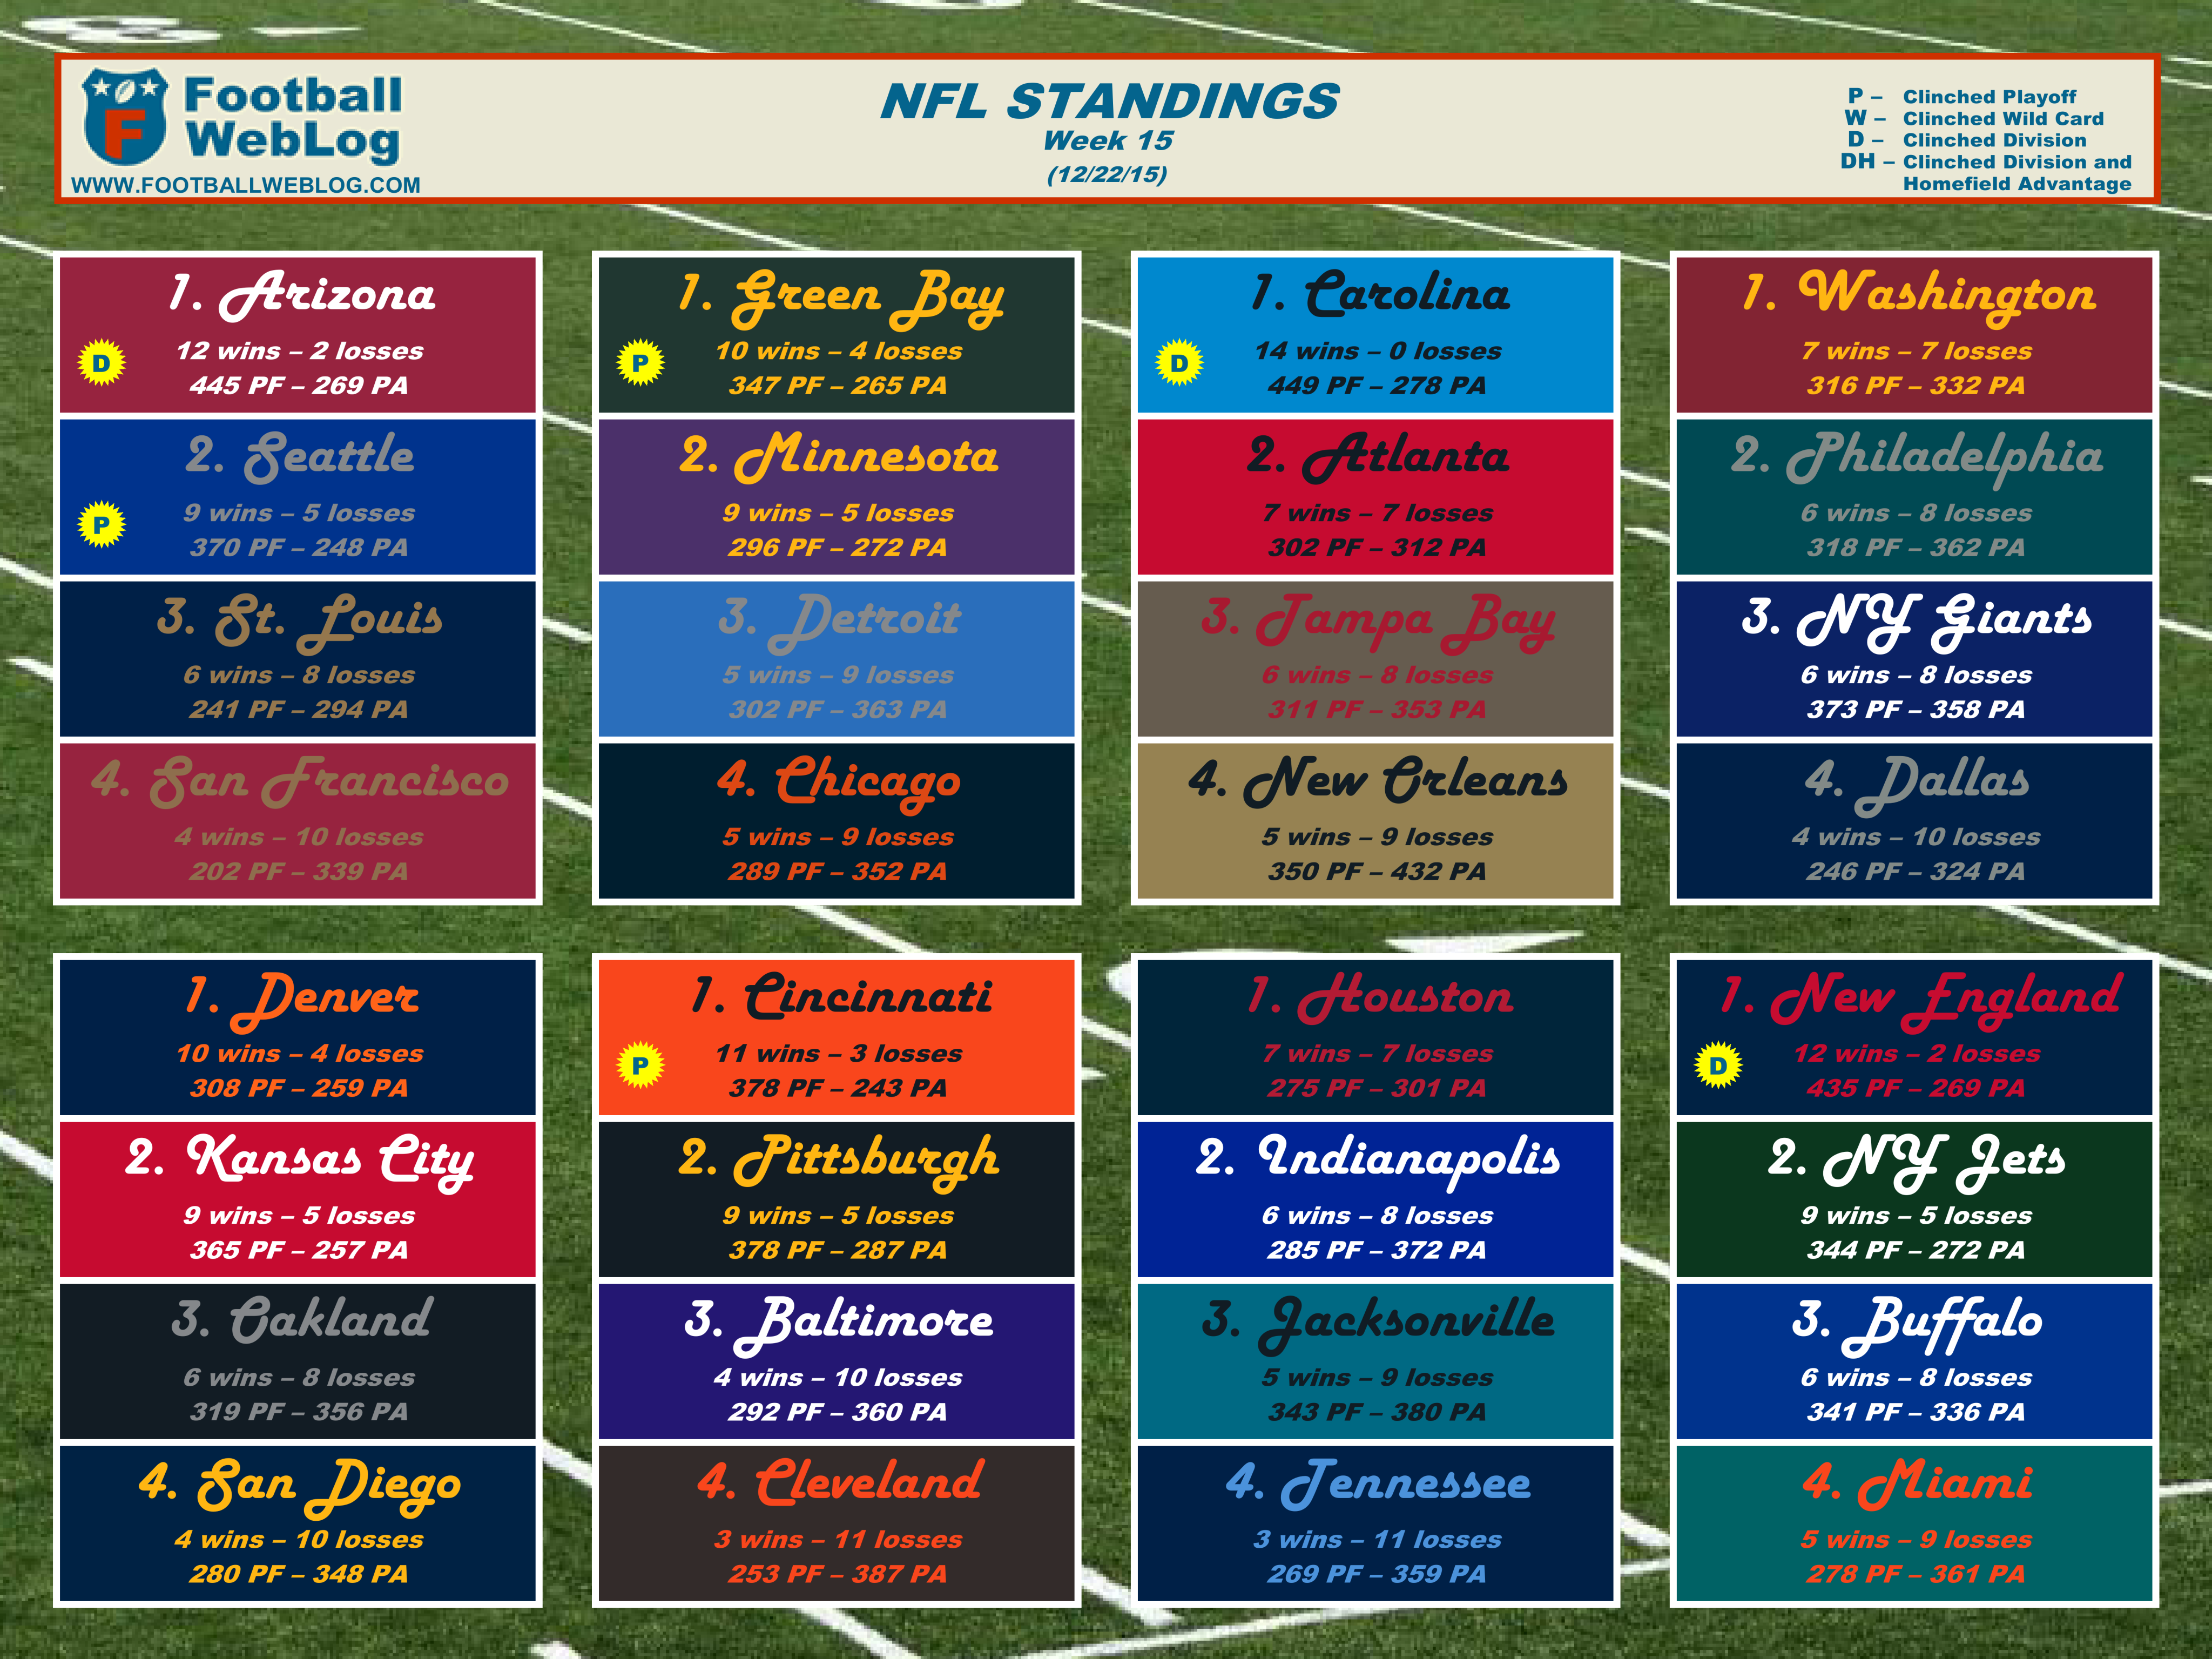 photograph relating to Nfl Week 15 Printable Schedule known as 2015 7 days 15 Printable Standings (Dec. 22) Soccer Blog site